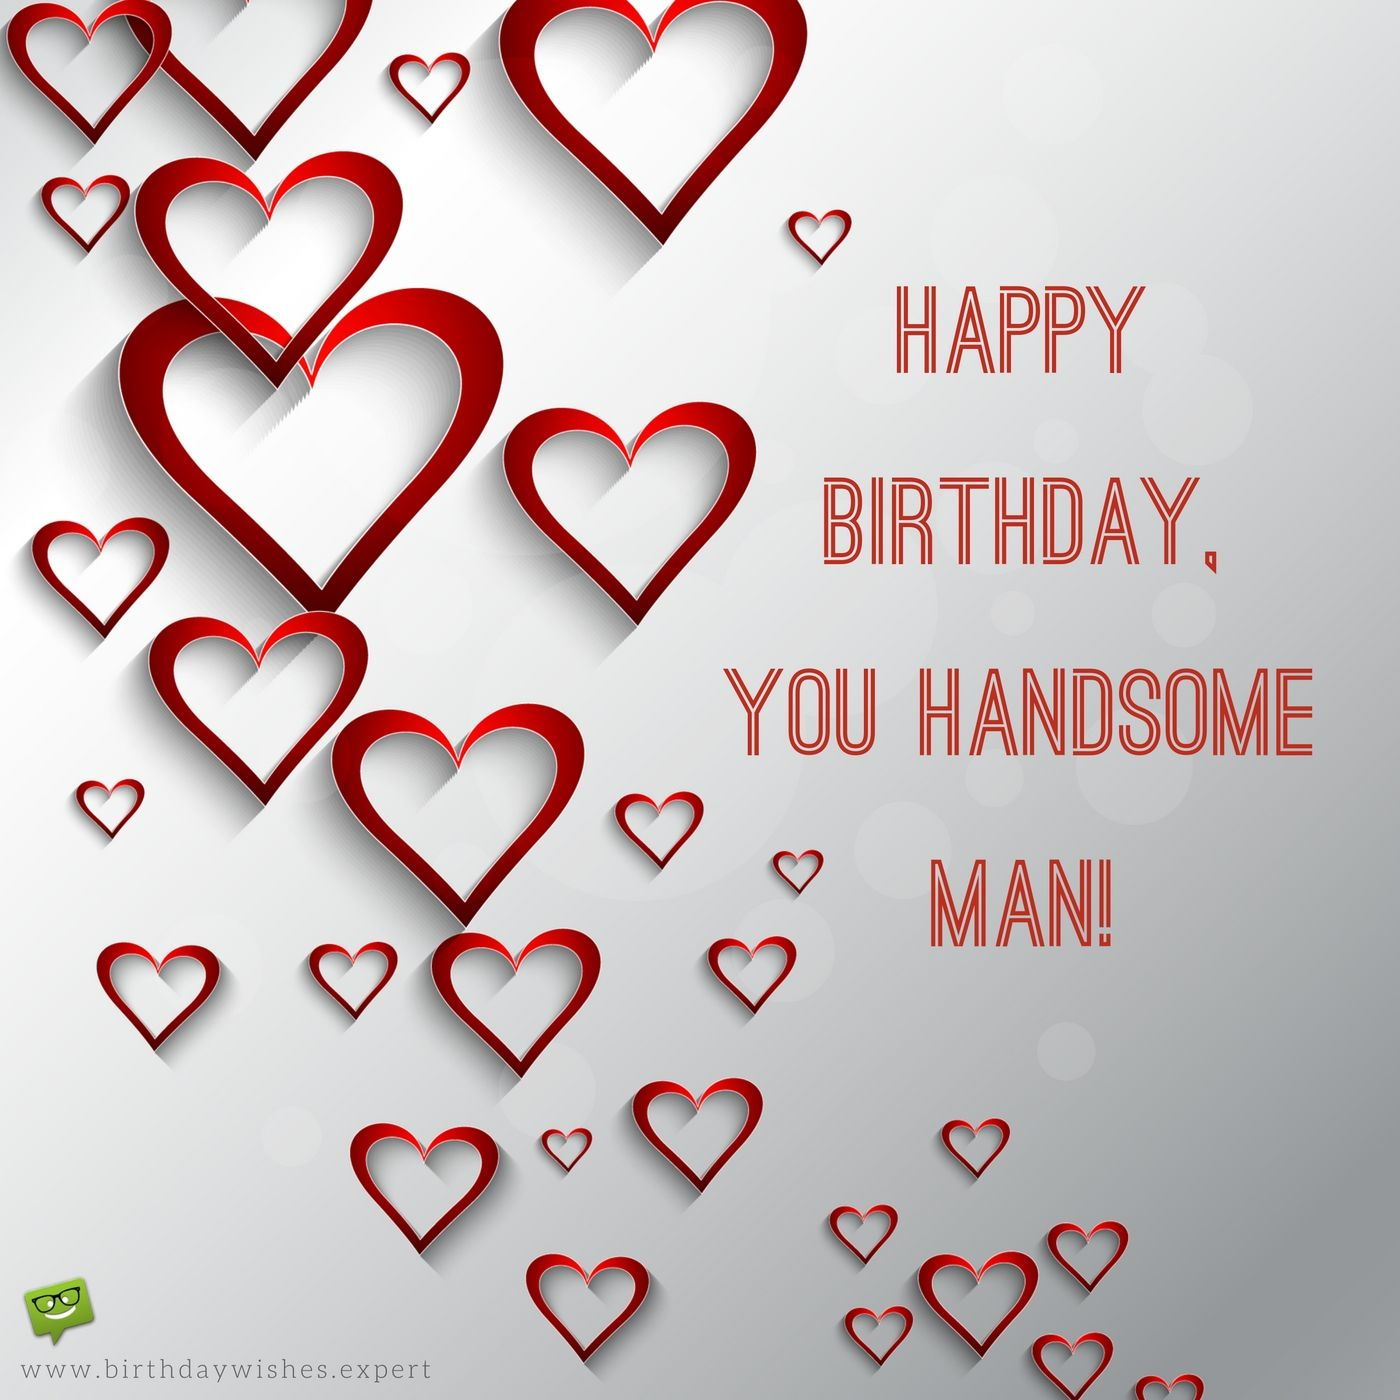 Smart Happy Birthday Wishes for your Boyfriend